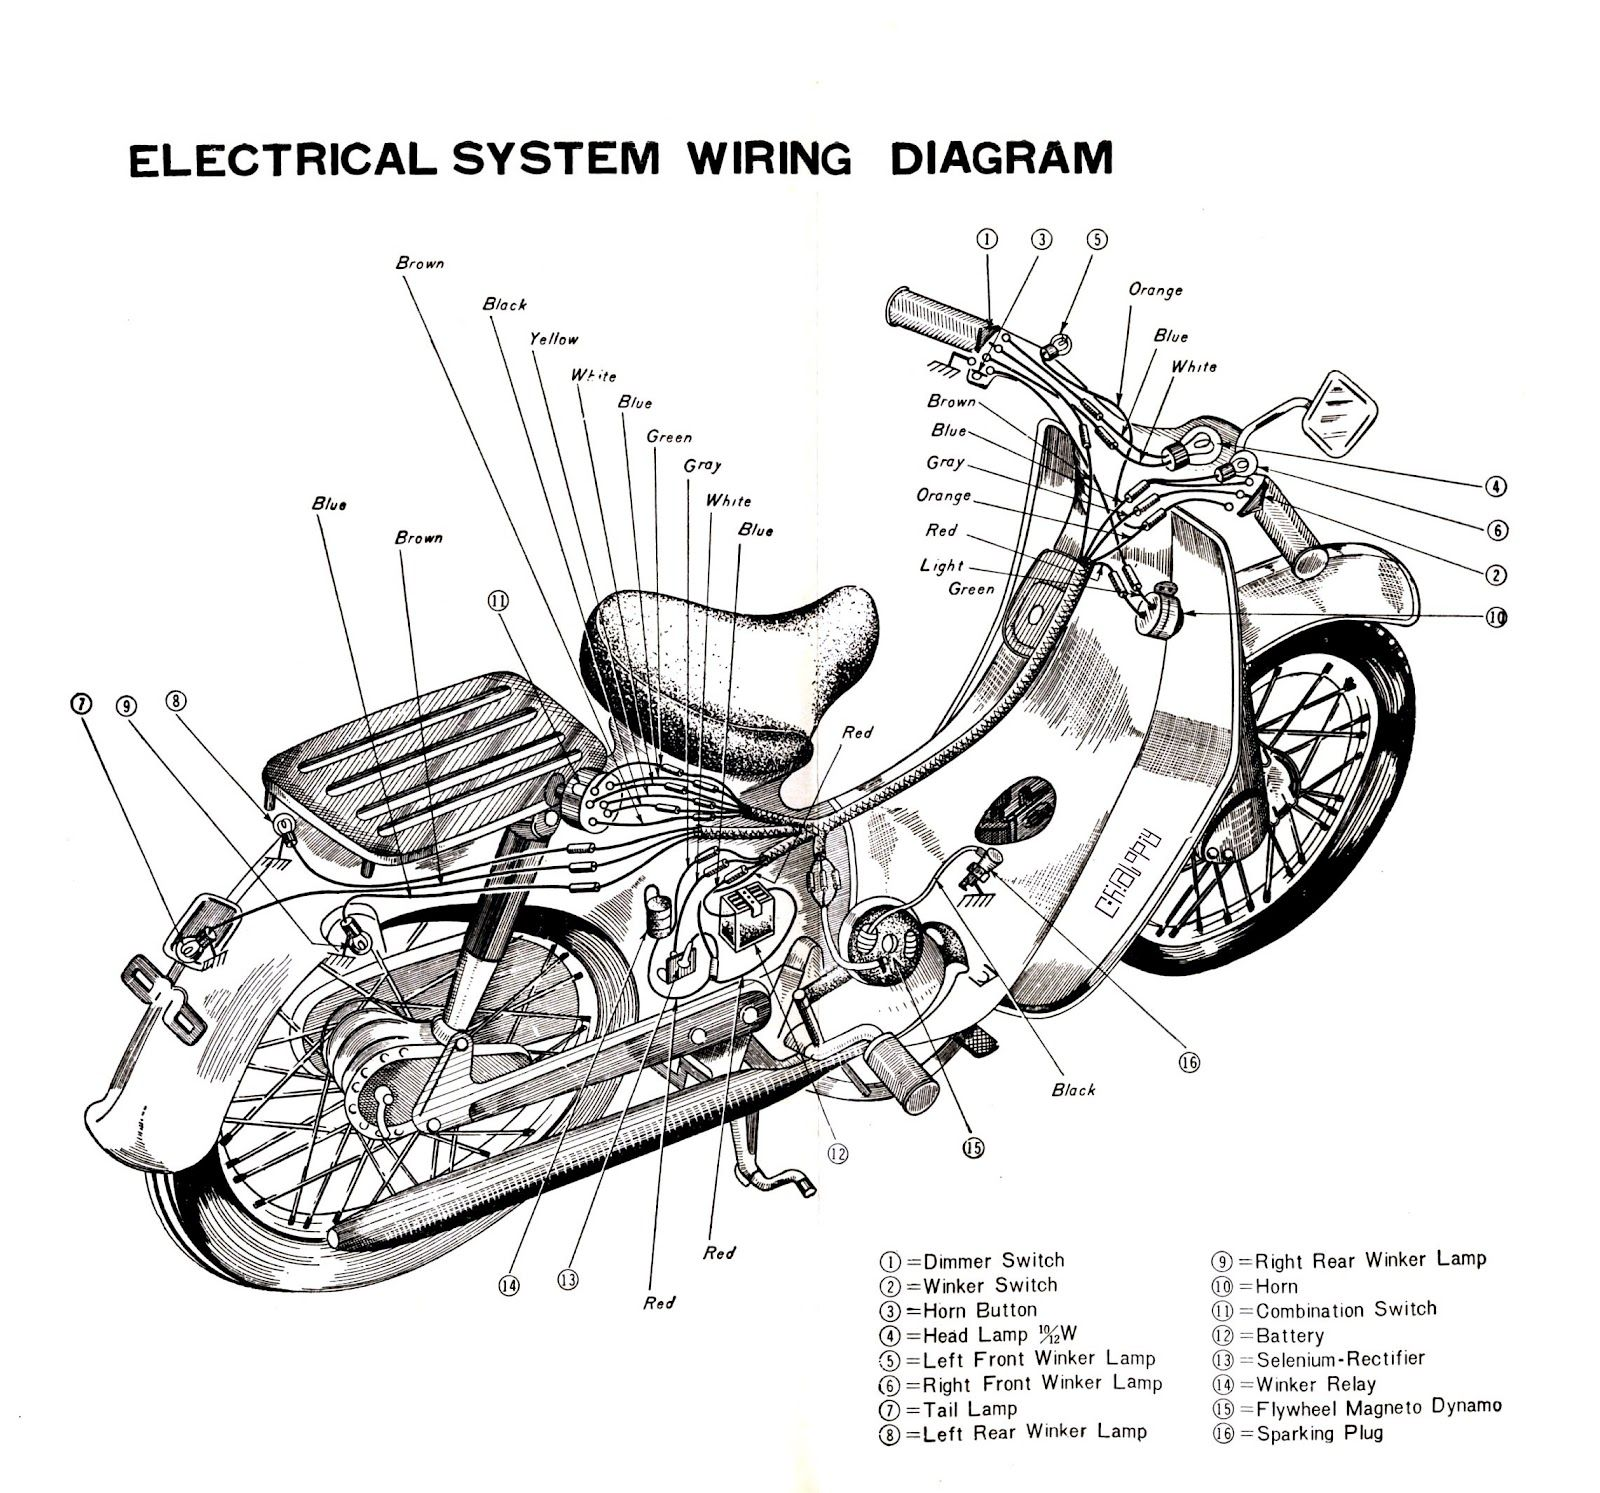 Super Club Electric Wiring Diagram Motorcycles Pinterest Honda 1986 Ford Escort Body Electrical System